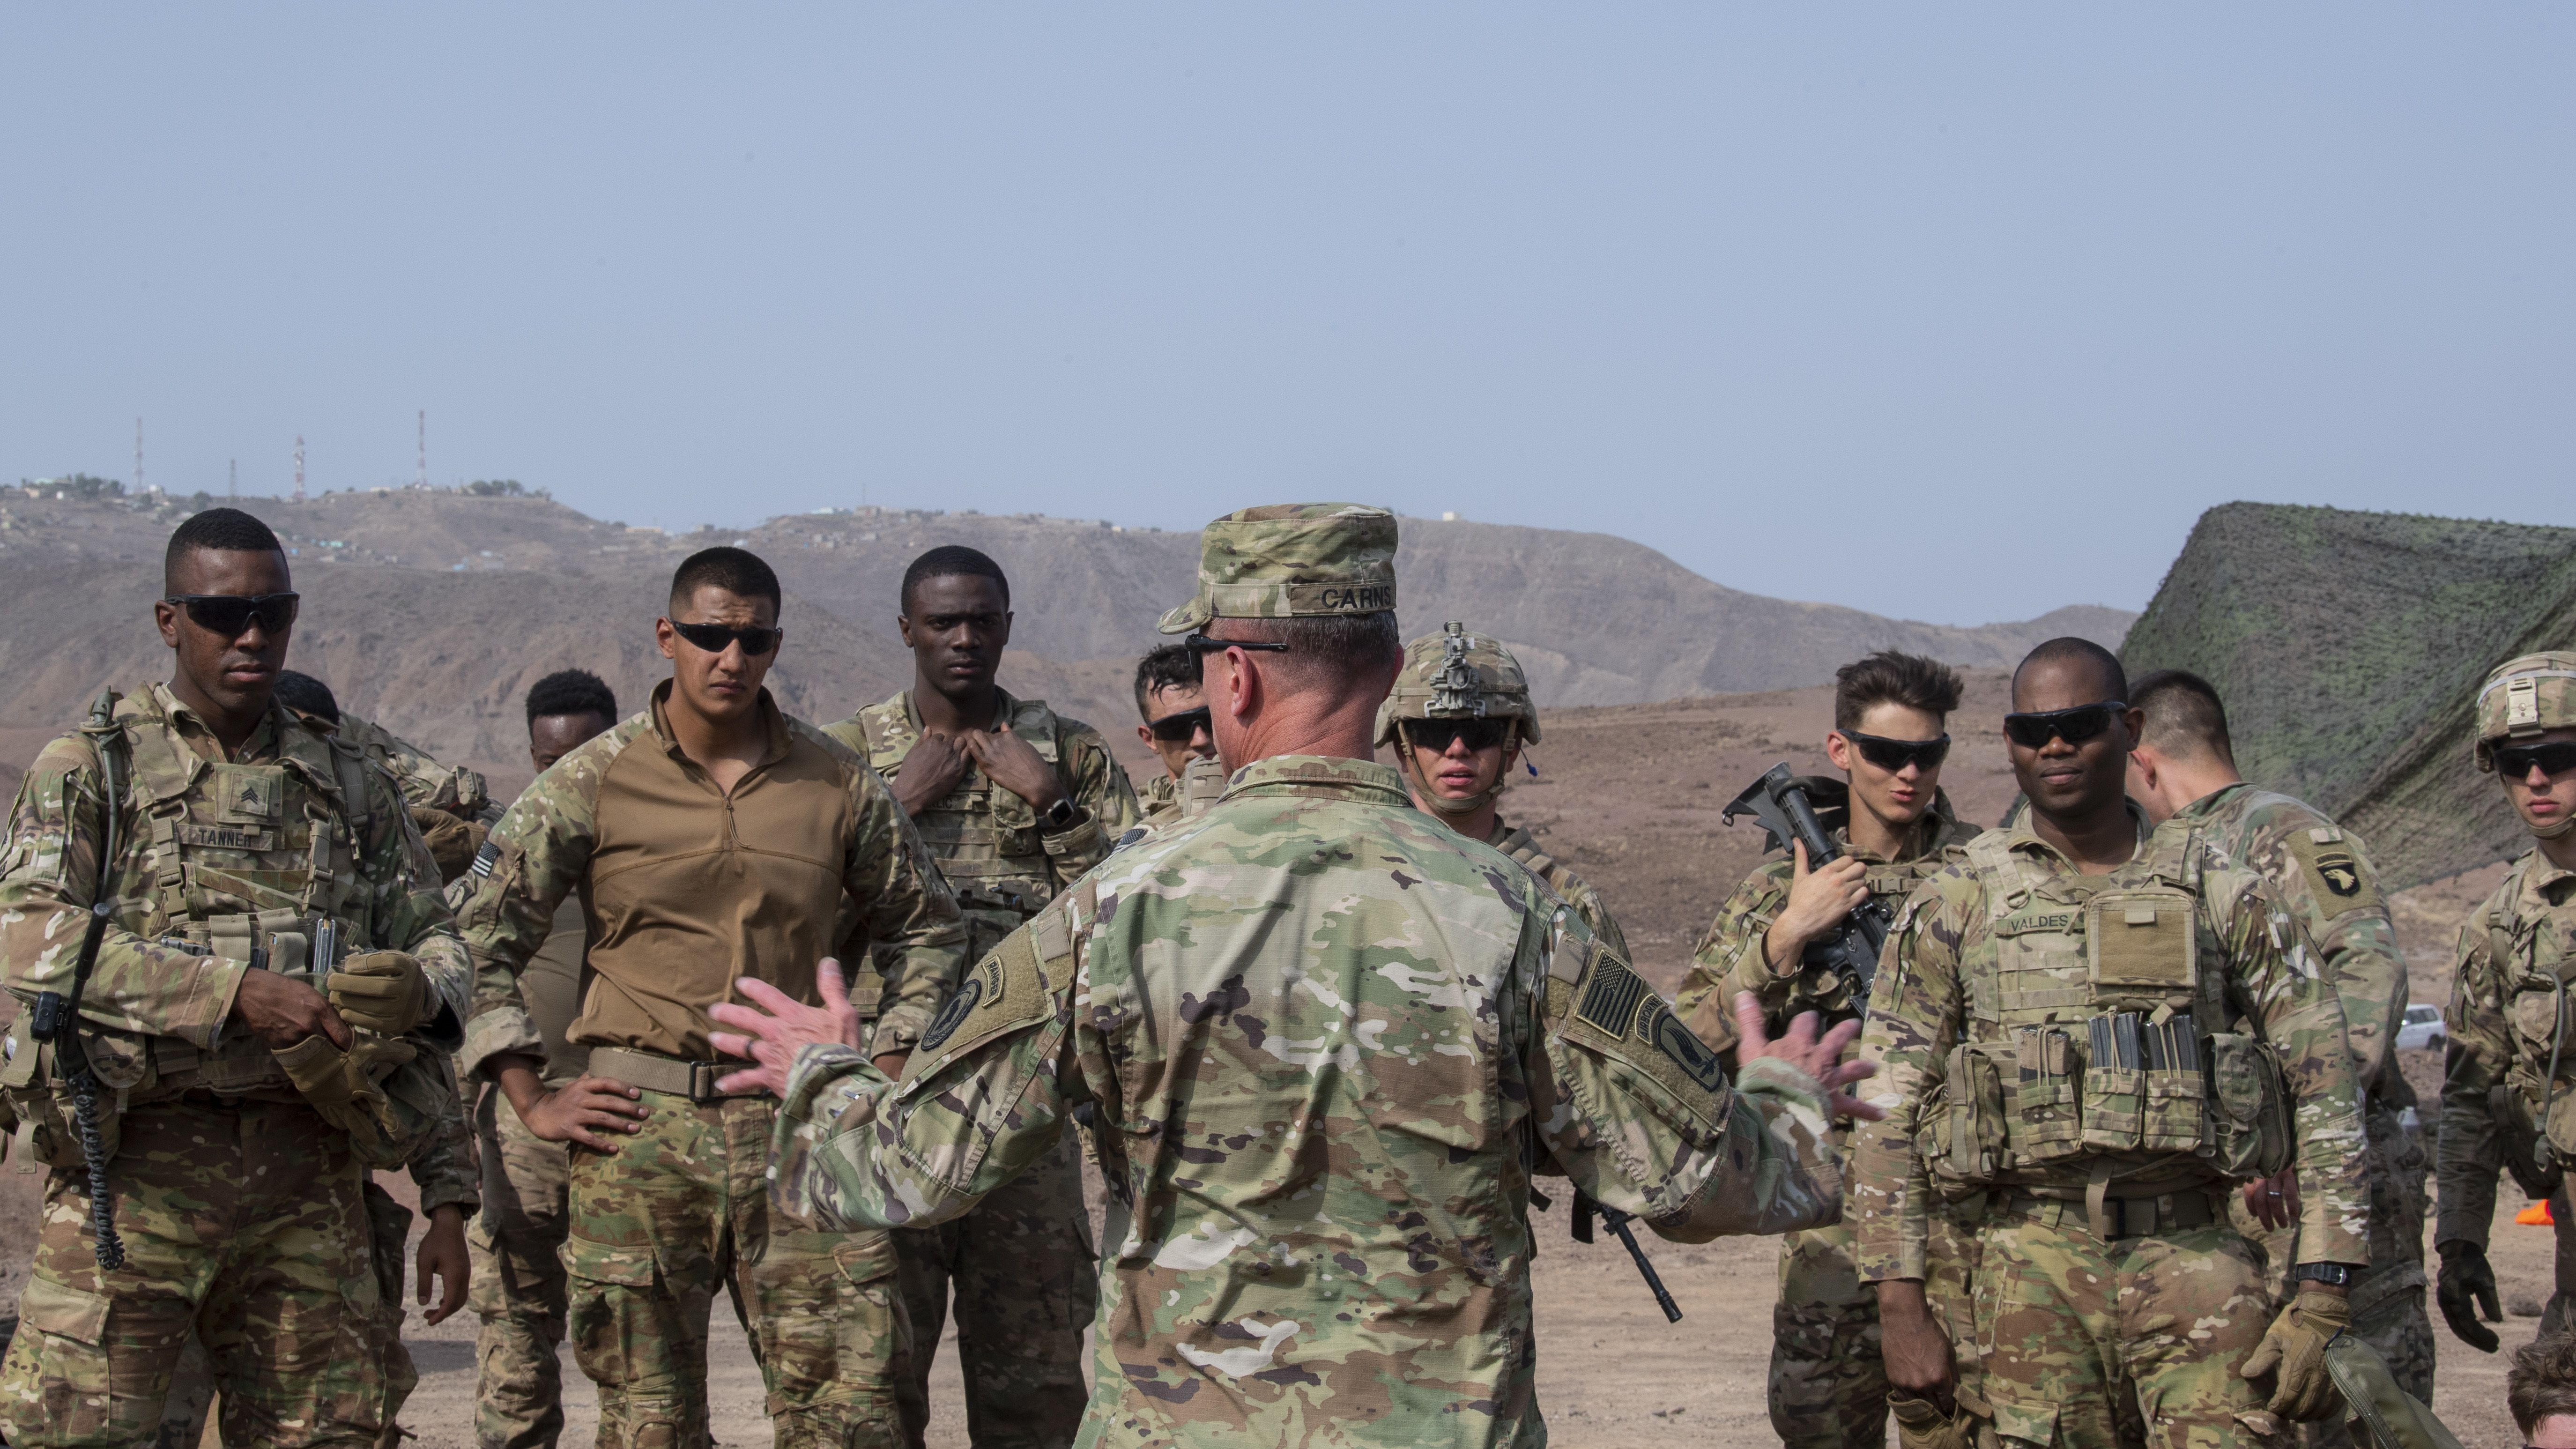 U.S. Army Command Sgt. Maj. Shawn Carns, command senior enlisted leader (SEL), Combined Joint Task Force-Horn of Africa, visits with U.S. Army Soldiers from the East African Response Force (EARF), deployed in support of Combined Joint Task Force-Horn of Africa, during his battlefield circulation visit at Arta Range, Djibouti, Aug. 26, 2019. Battlefield circulation visits allow Carns to meet with units within CJTF-HOA's combined joint operations area for familiarization and rapport-building. (U.S. Air Force photo by Staff Sgt. J.D. Strong II)